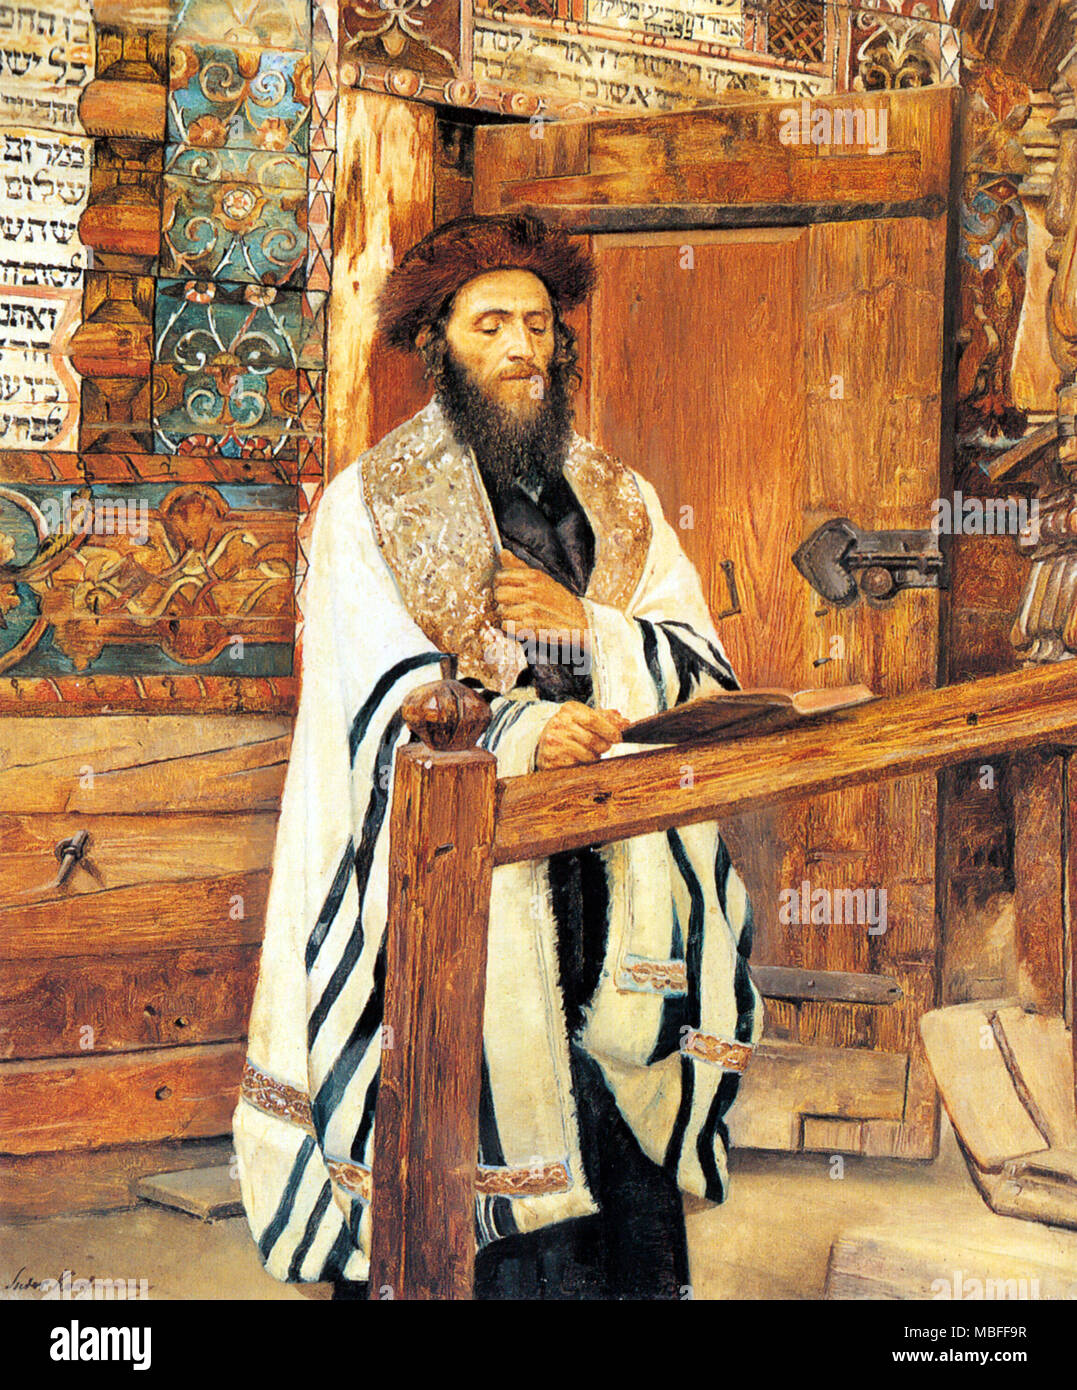 Rabbi in front of the wooden synagogue jablonow - Stock Image